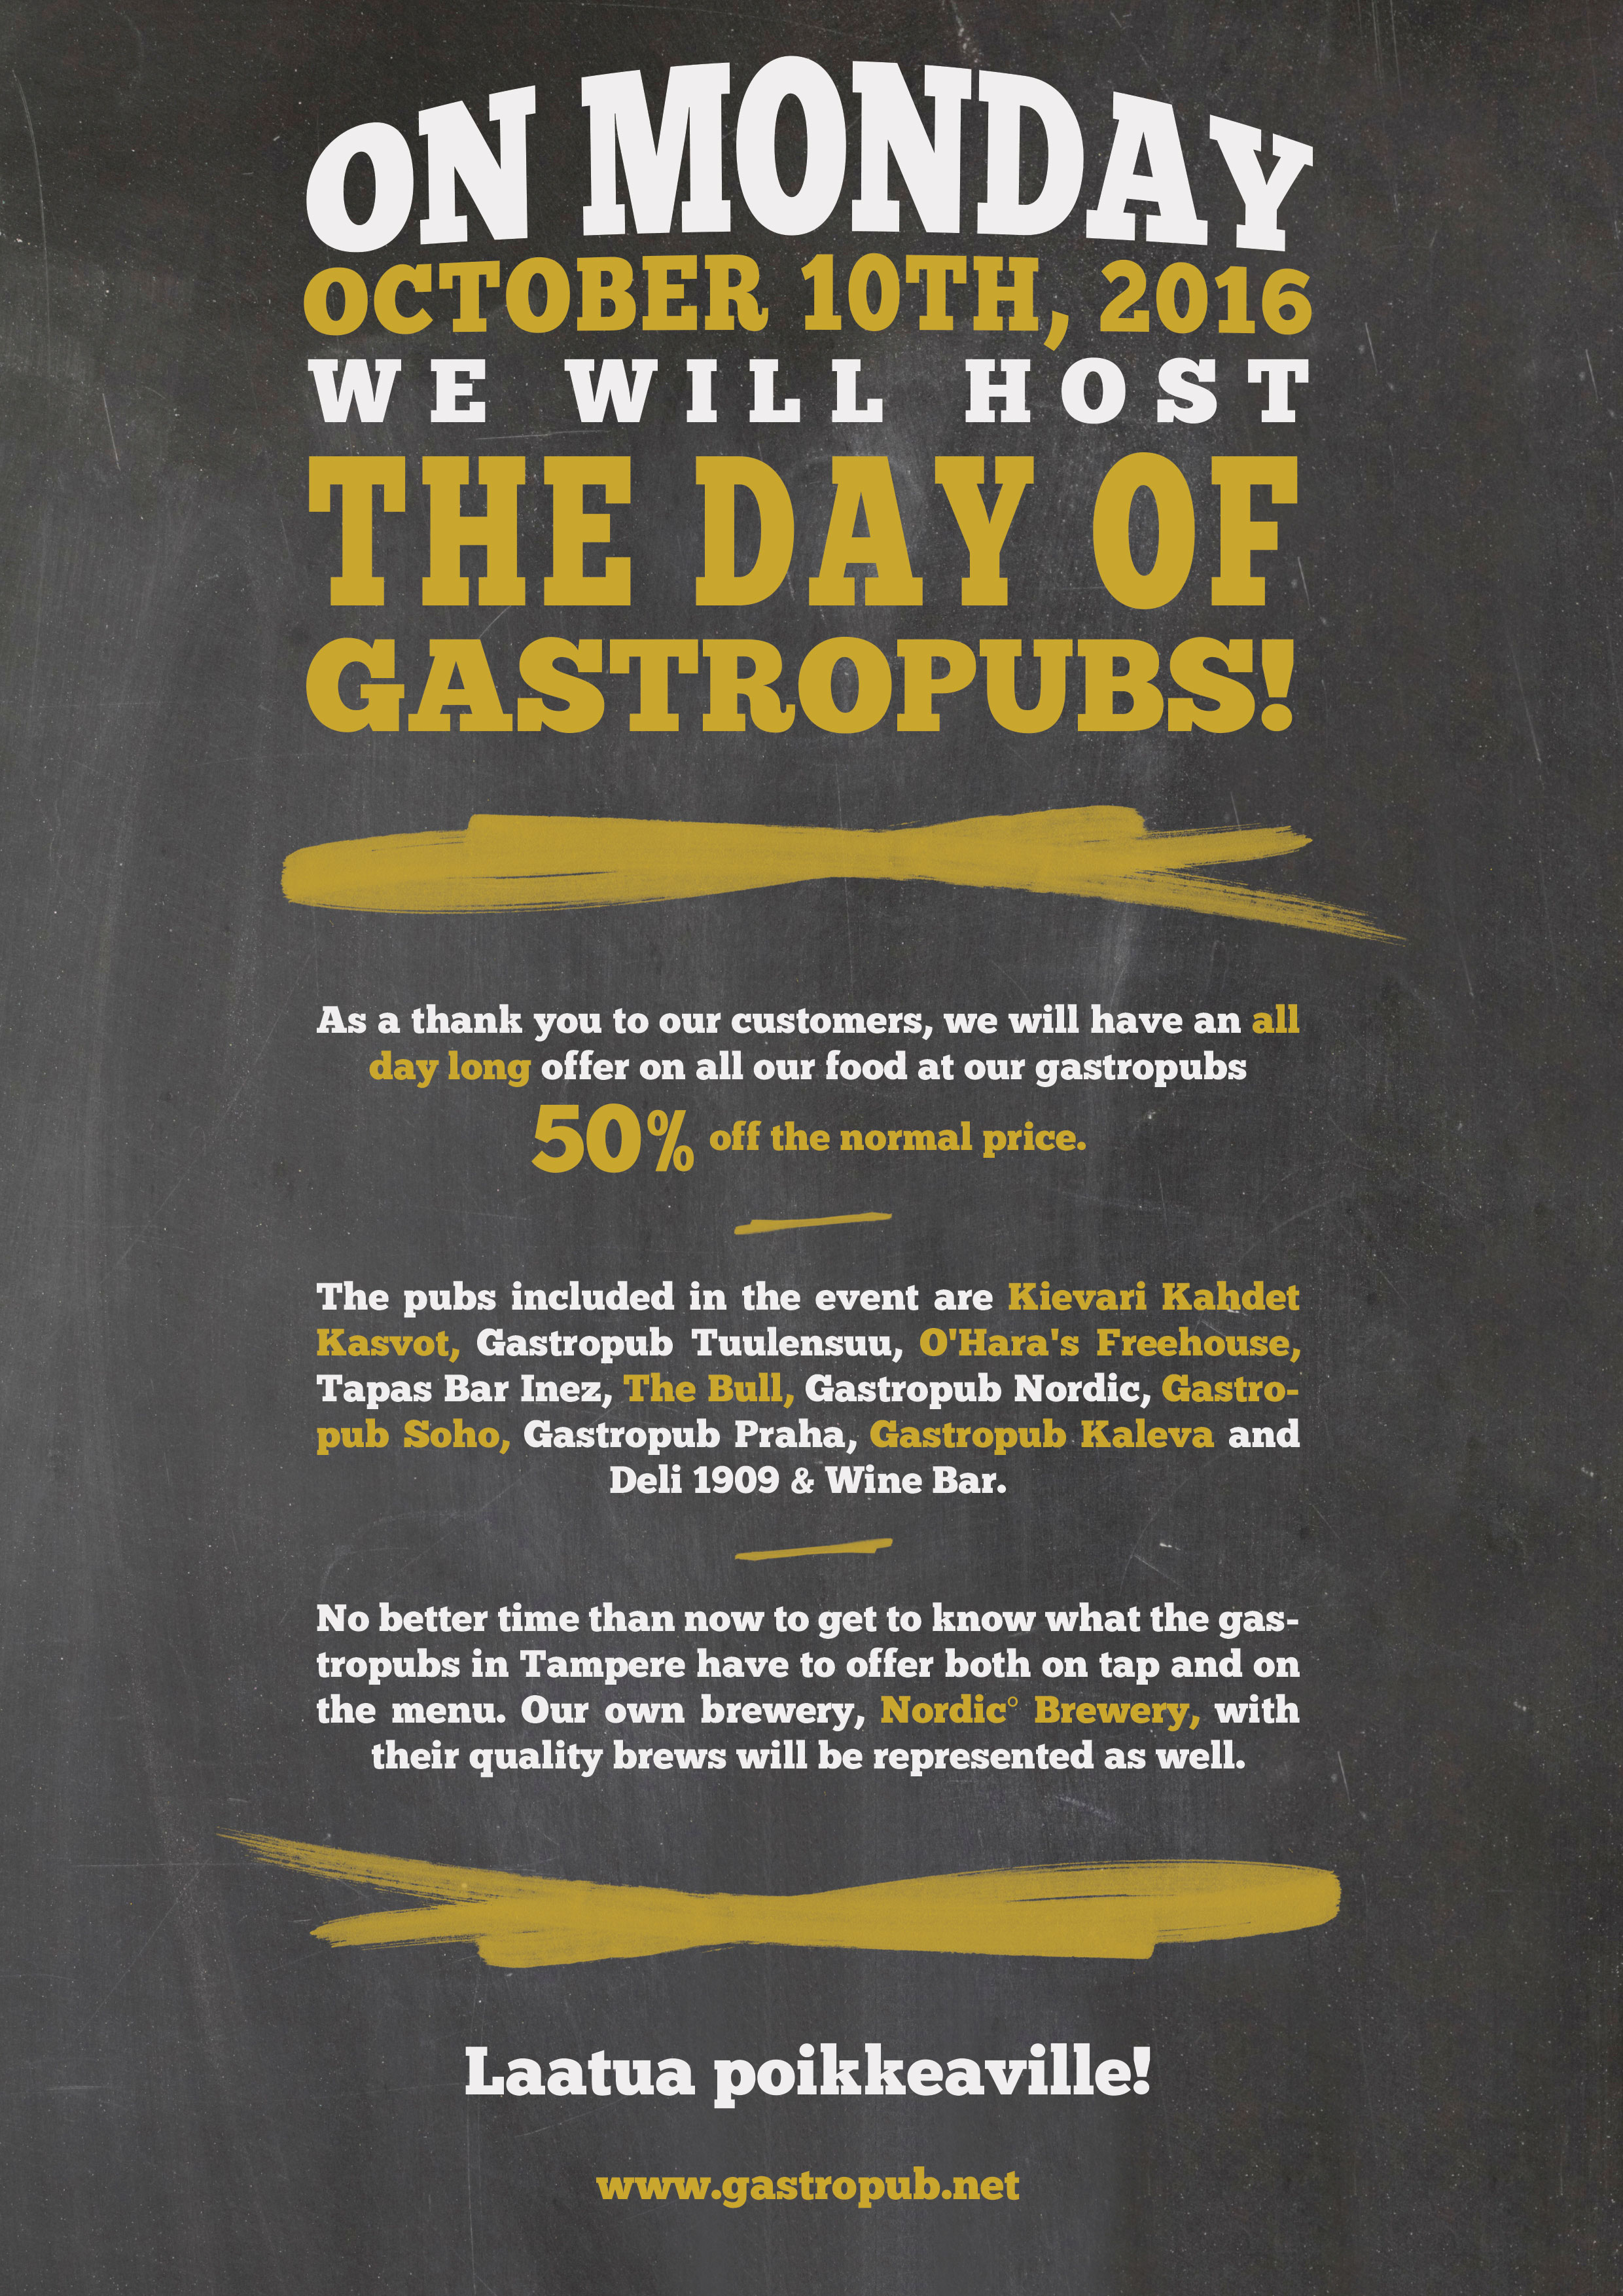 The Day of Gastropubs